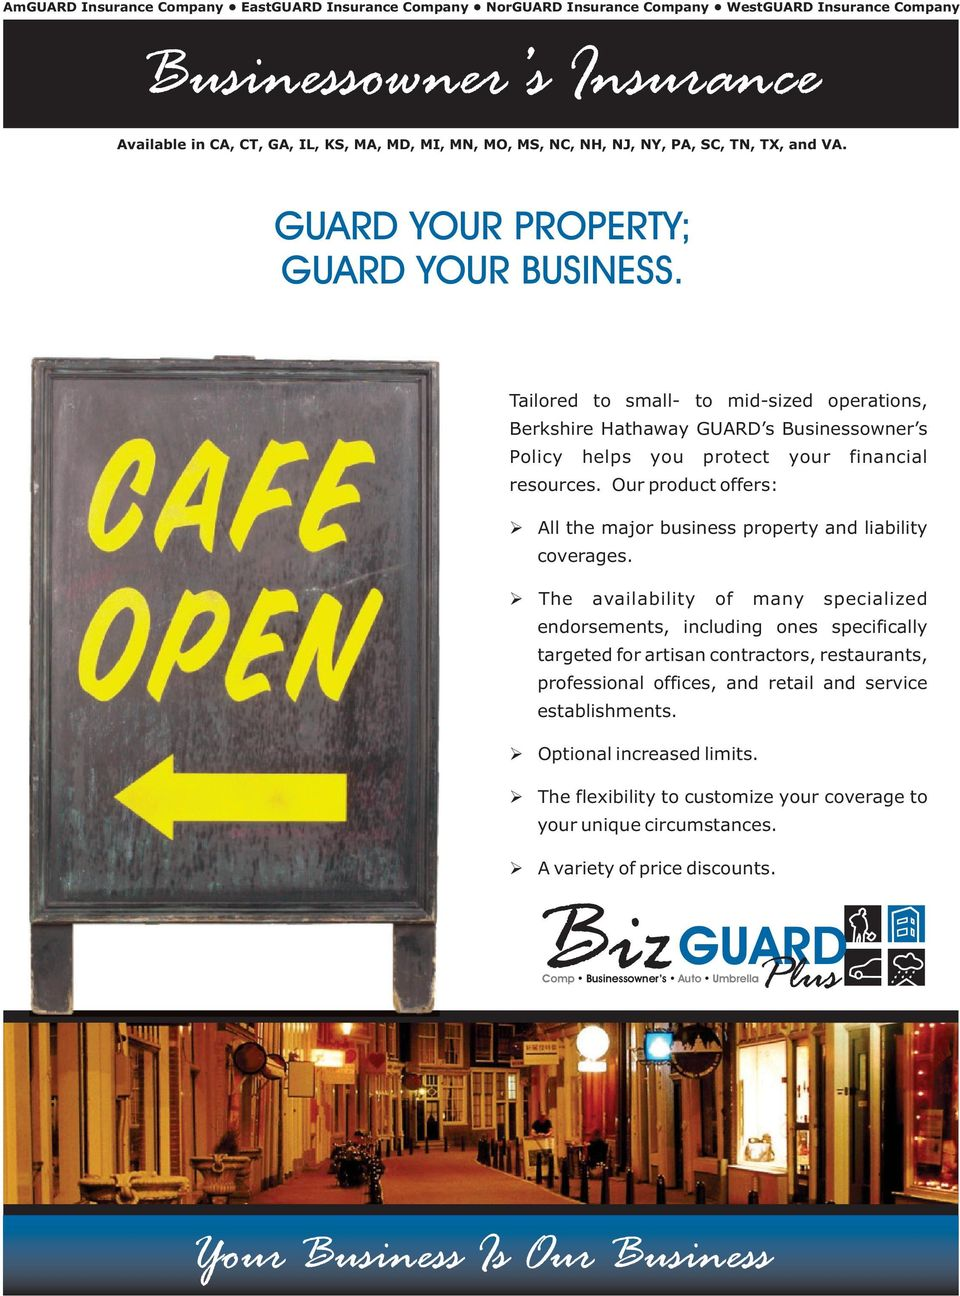 Our product offers: All the major business property and liability coverages.